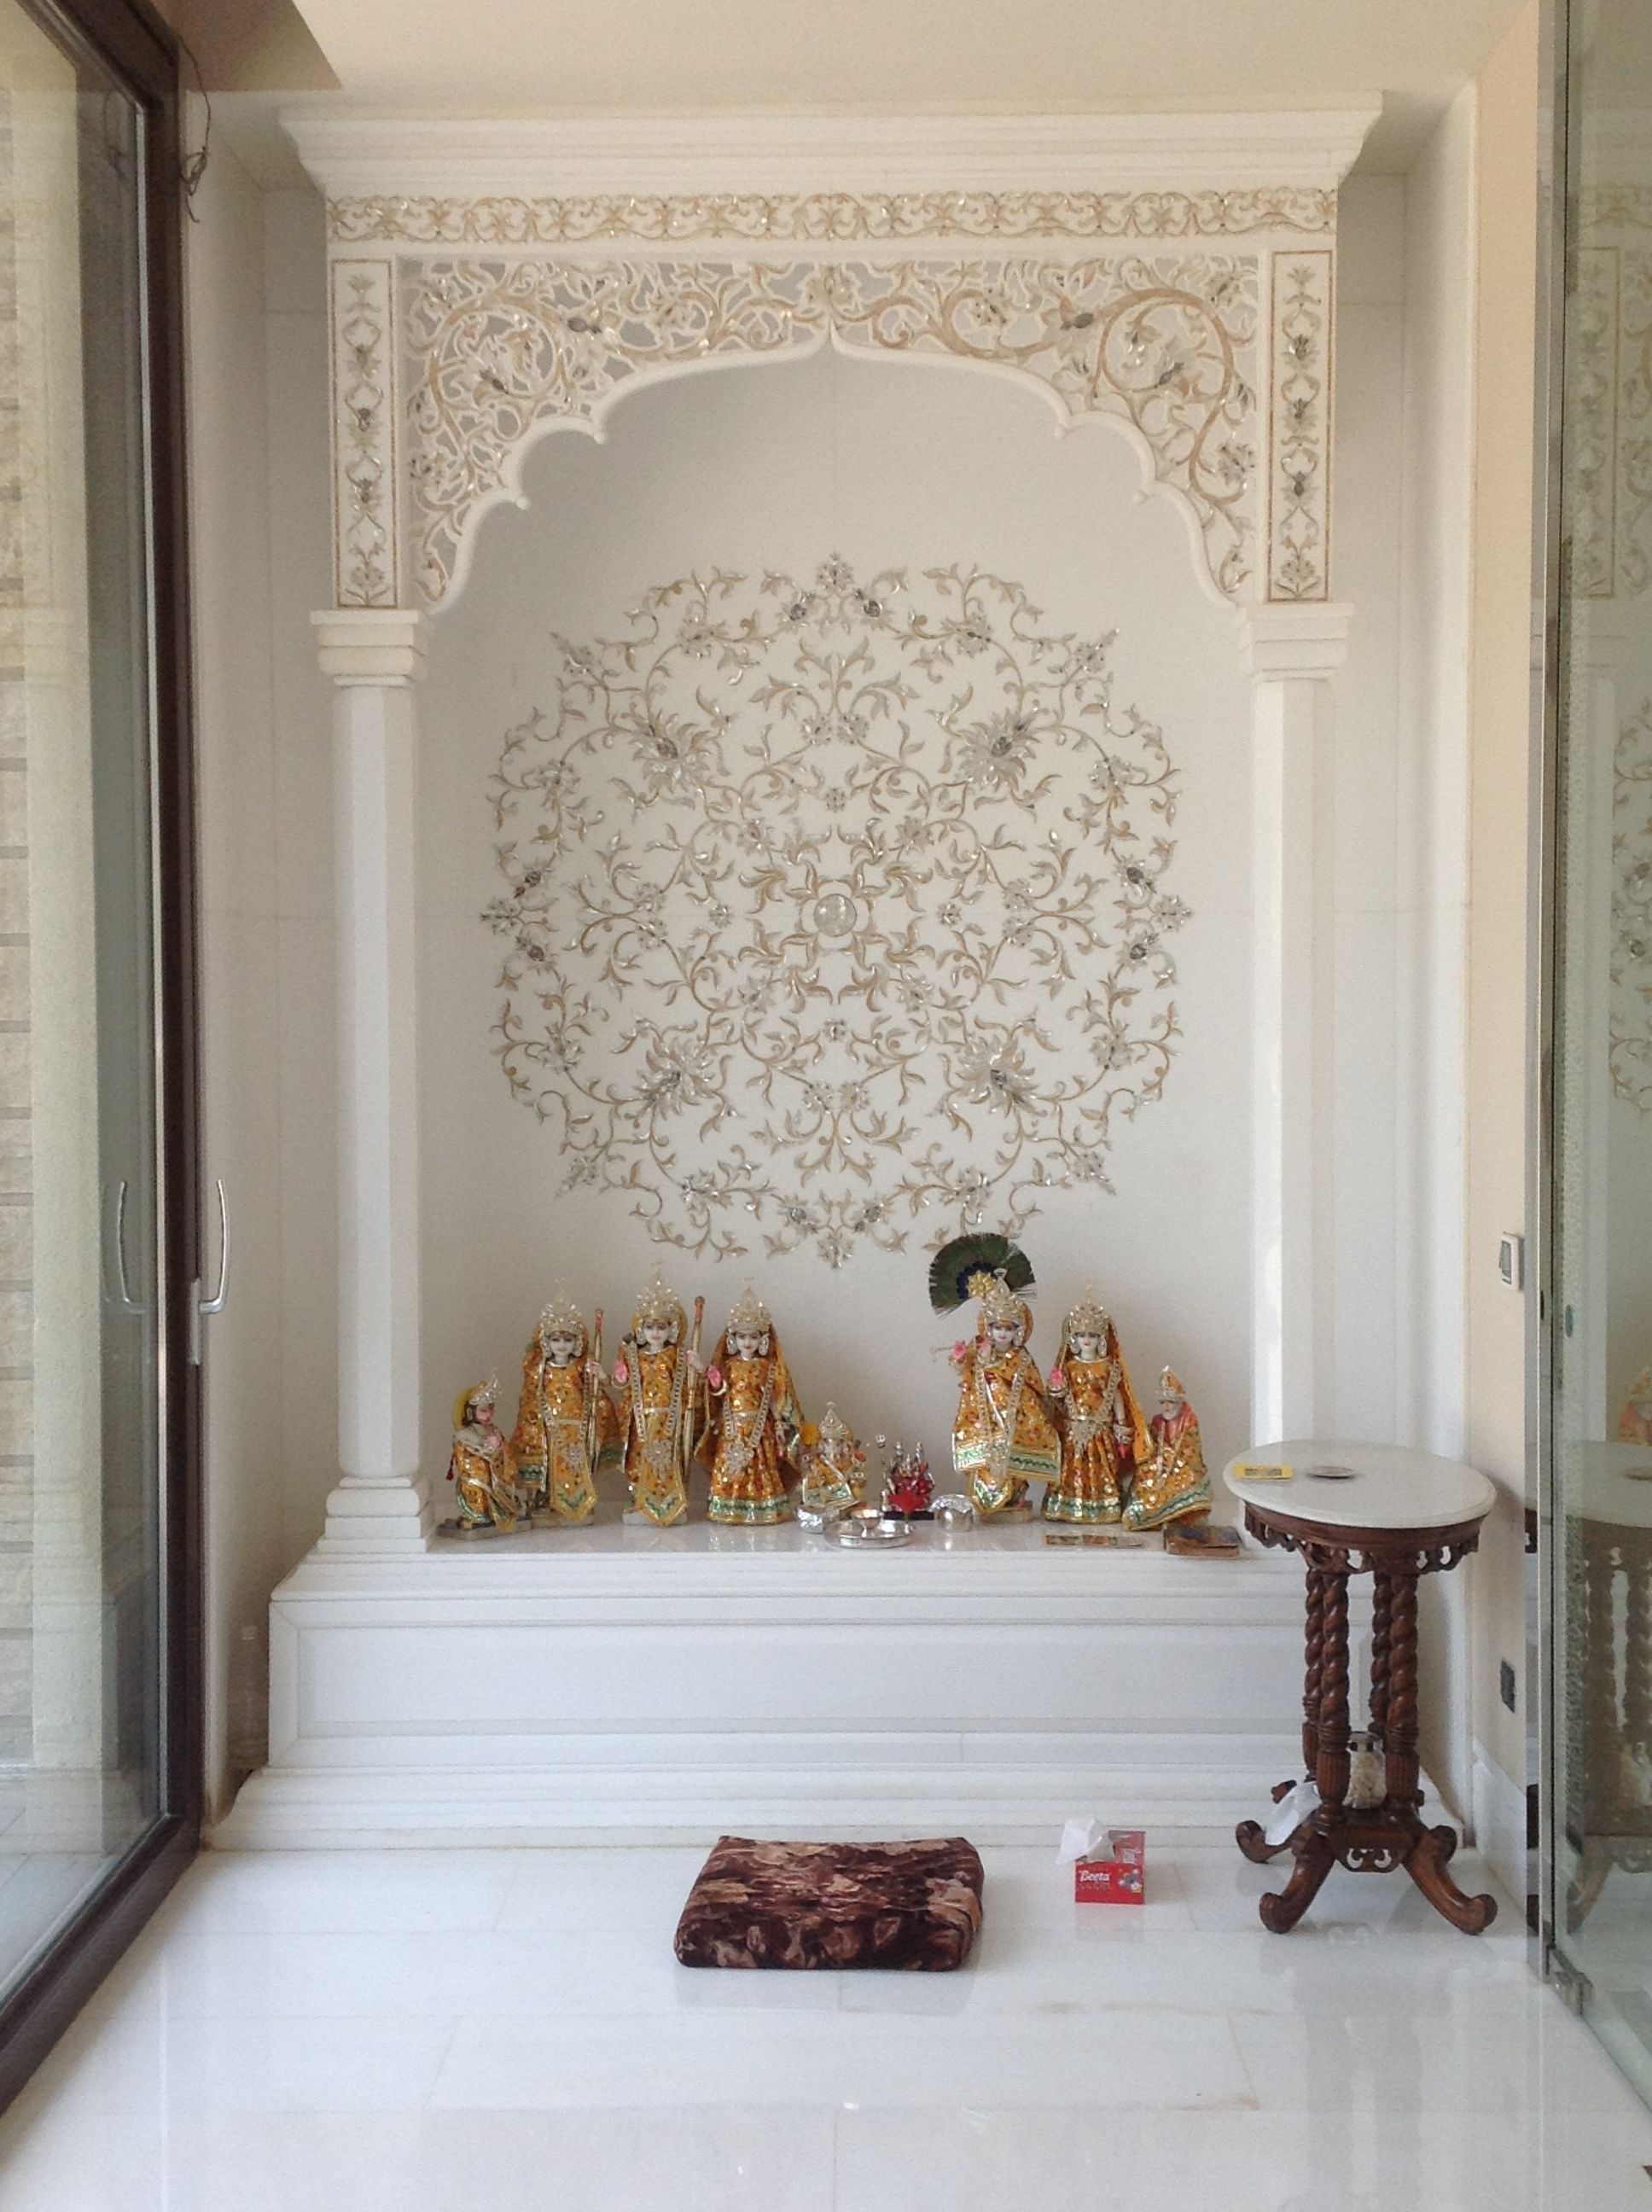 Prayer Room Design Ideas: Room Door Design, Pooja Room Door Design